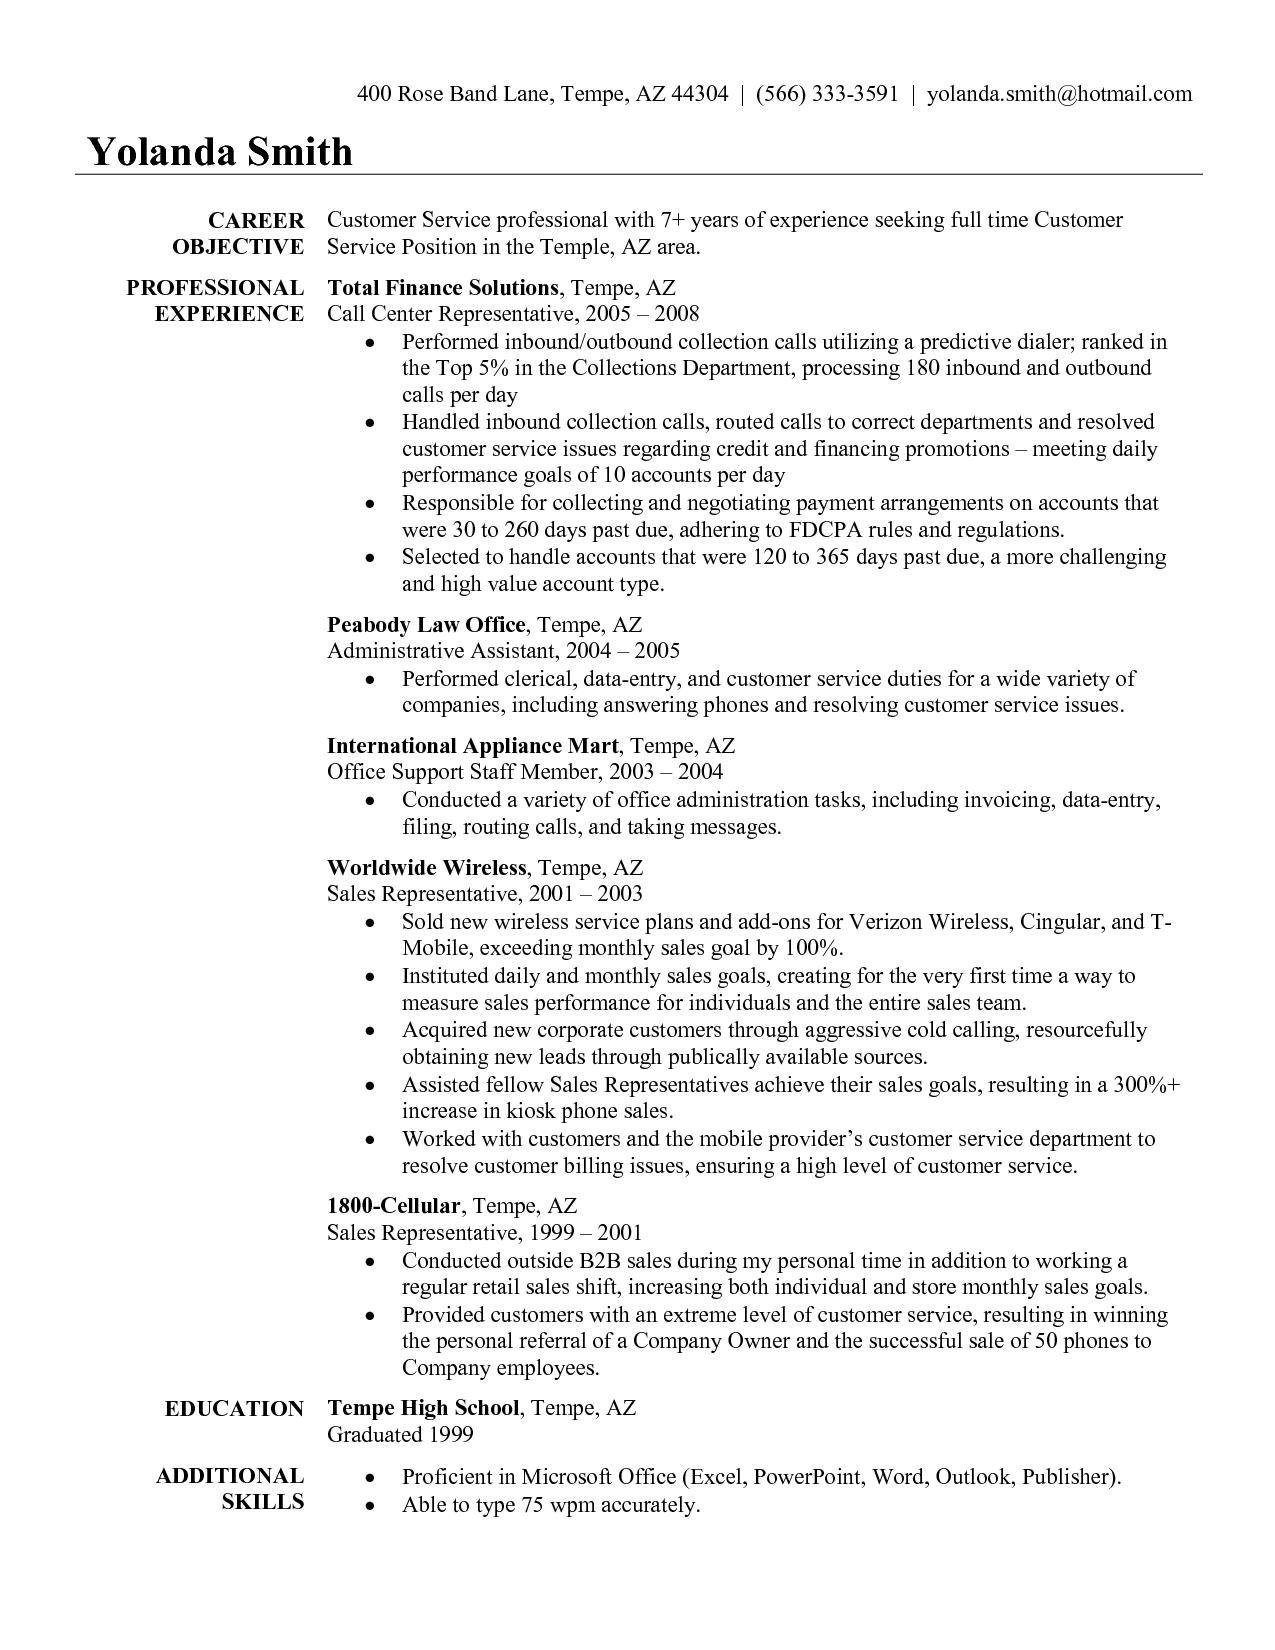 Skills On A Resume Examples Traffic Customer Resume Examplescustomer Service Resume Examples